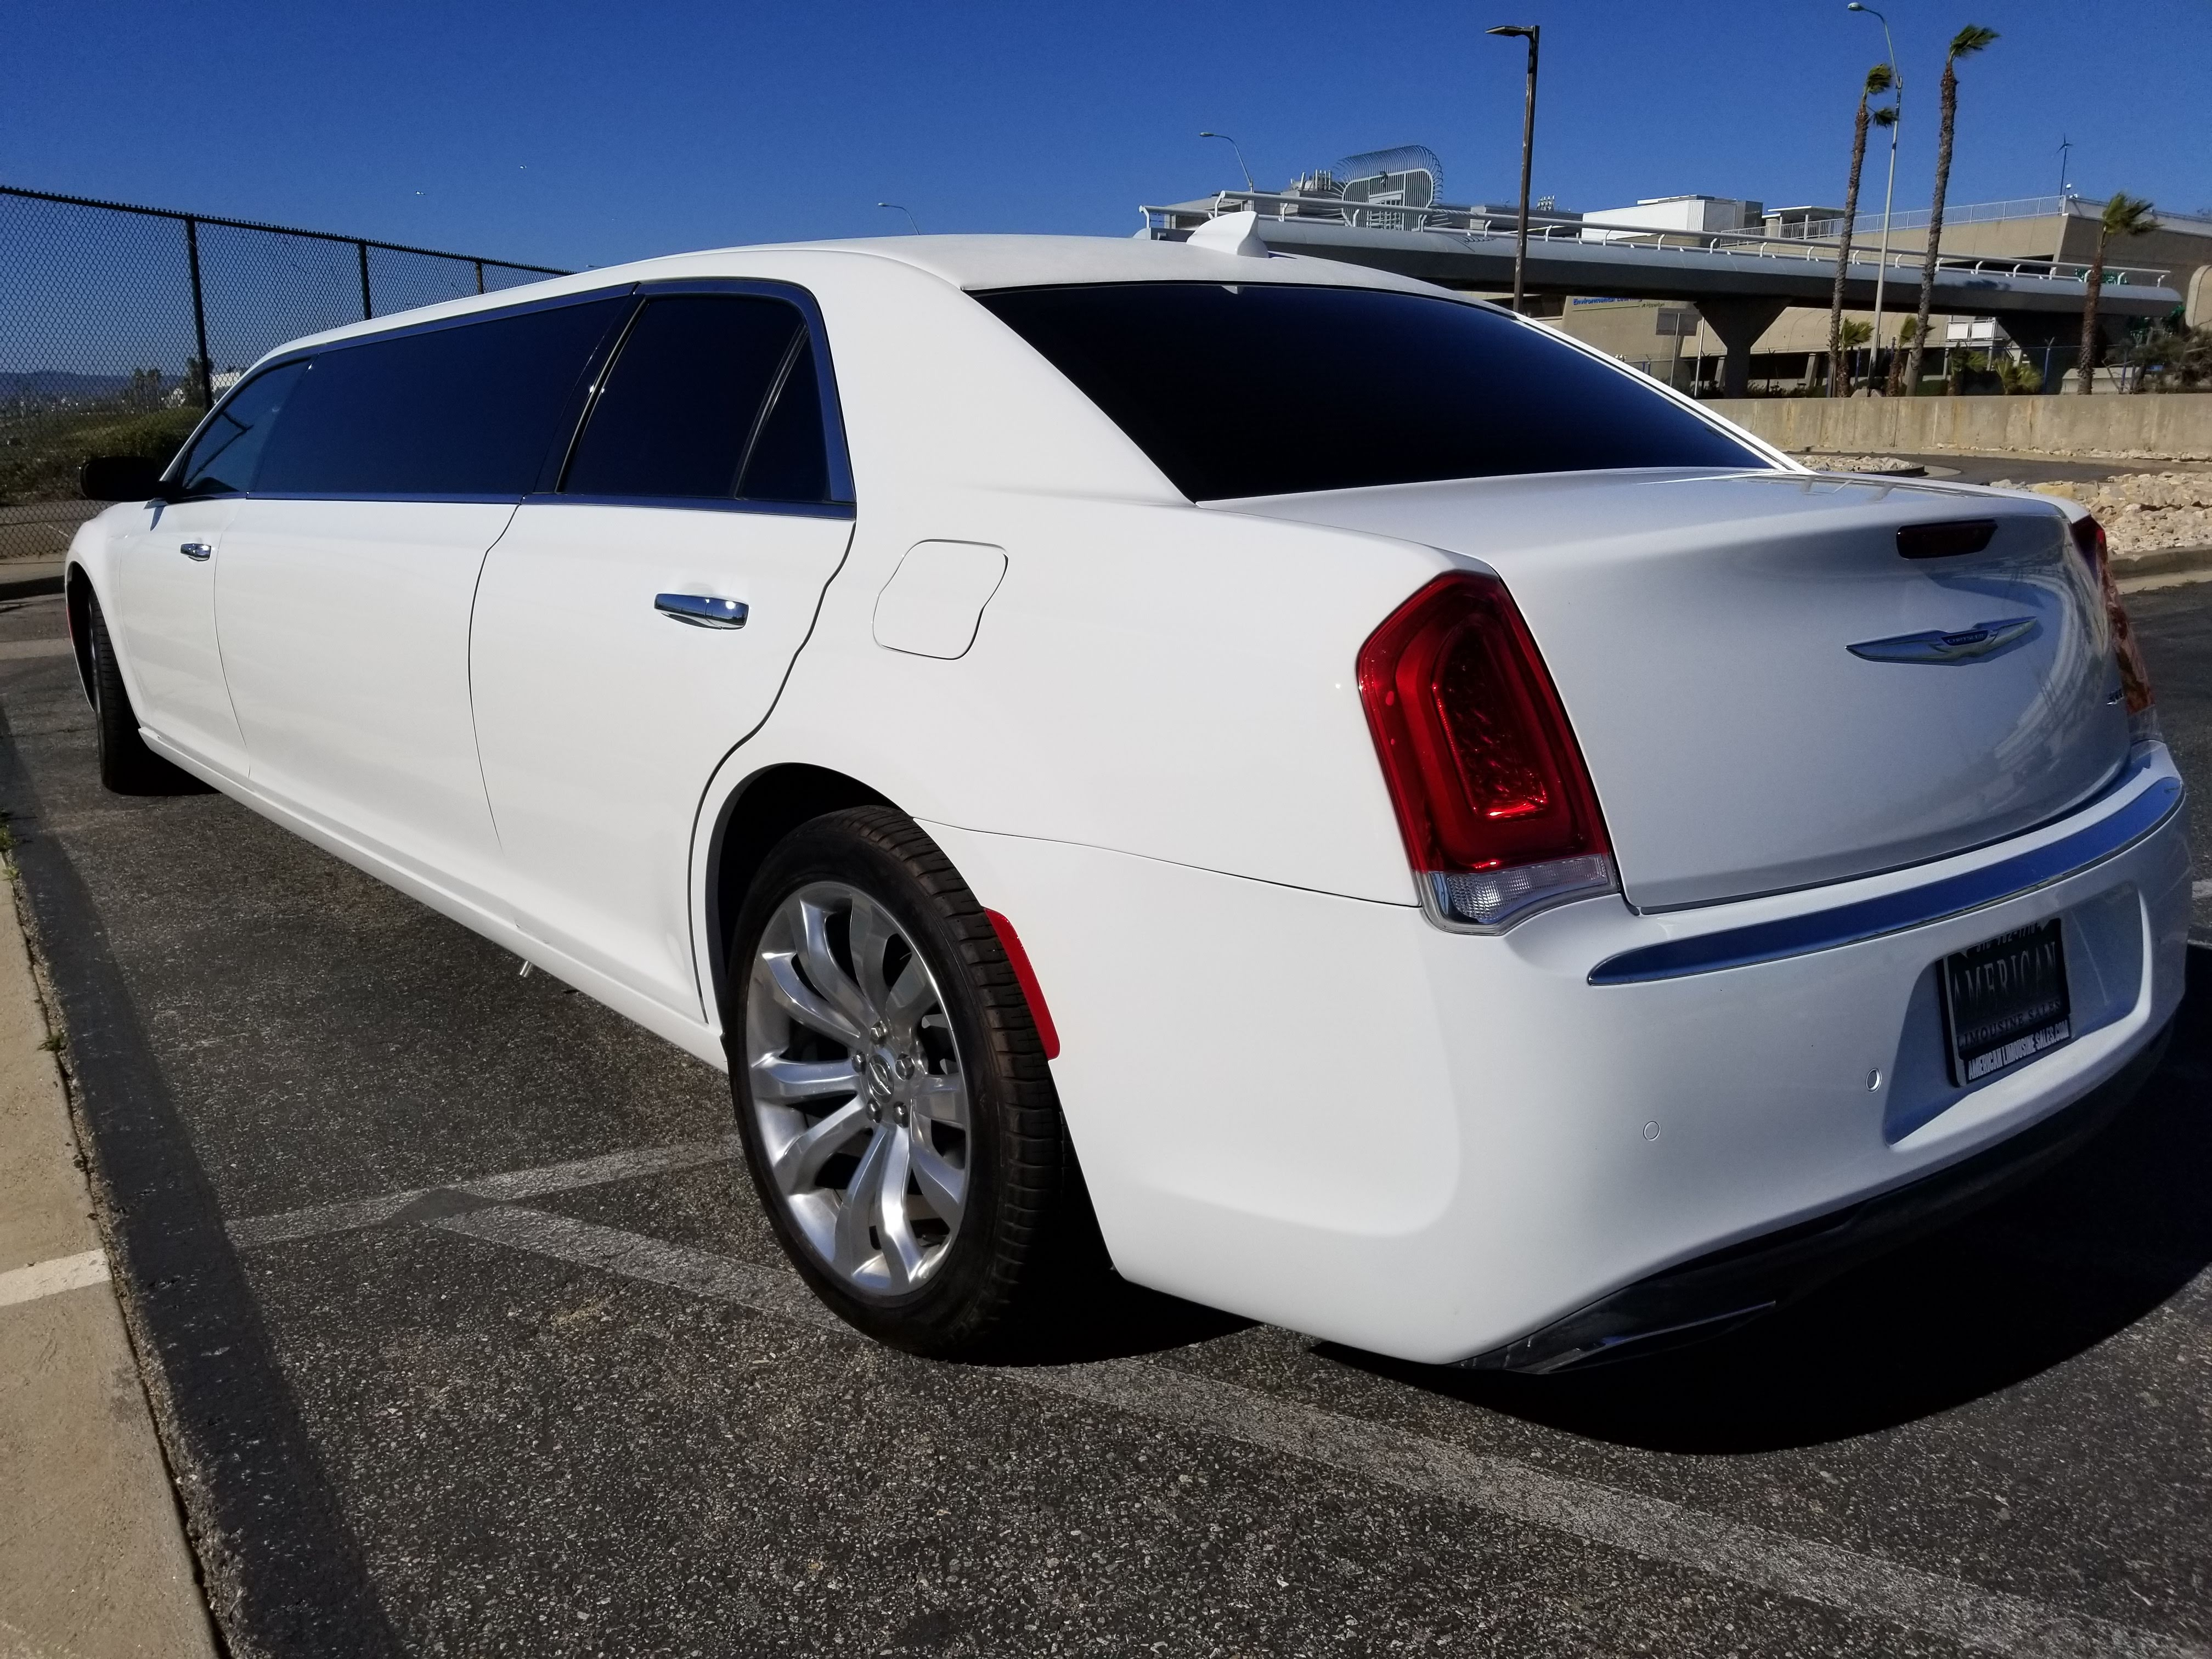 2018 White 70 Inch Stretch Chrysler 300 Limousine For Sale